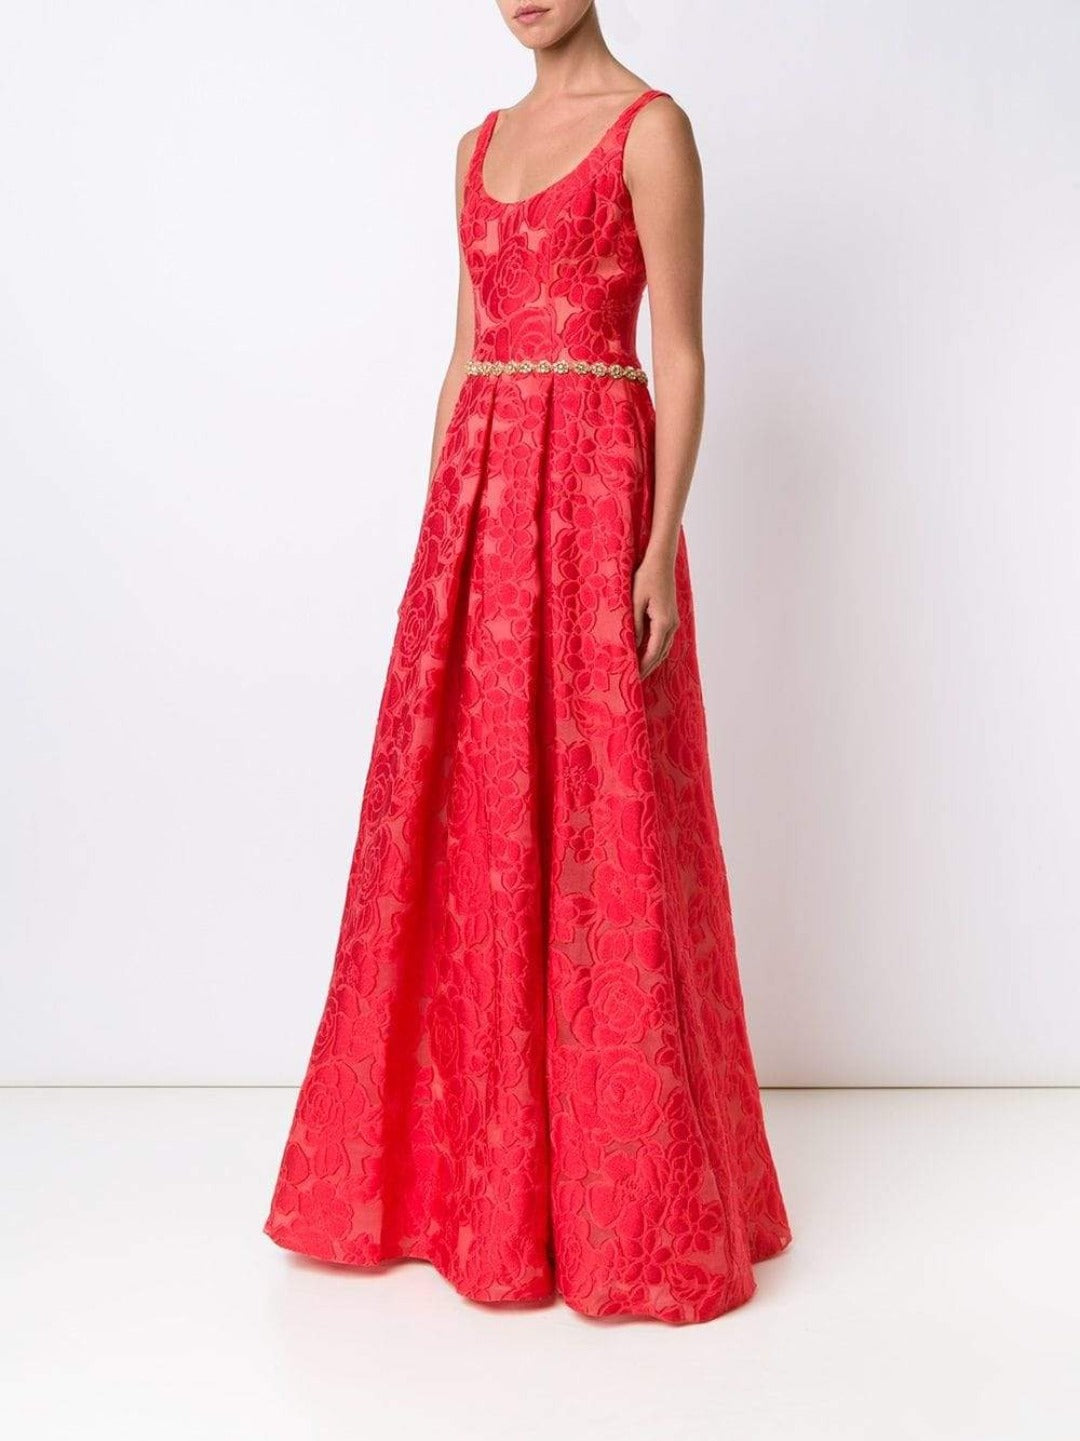 brocade a-line gown